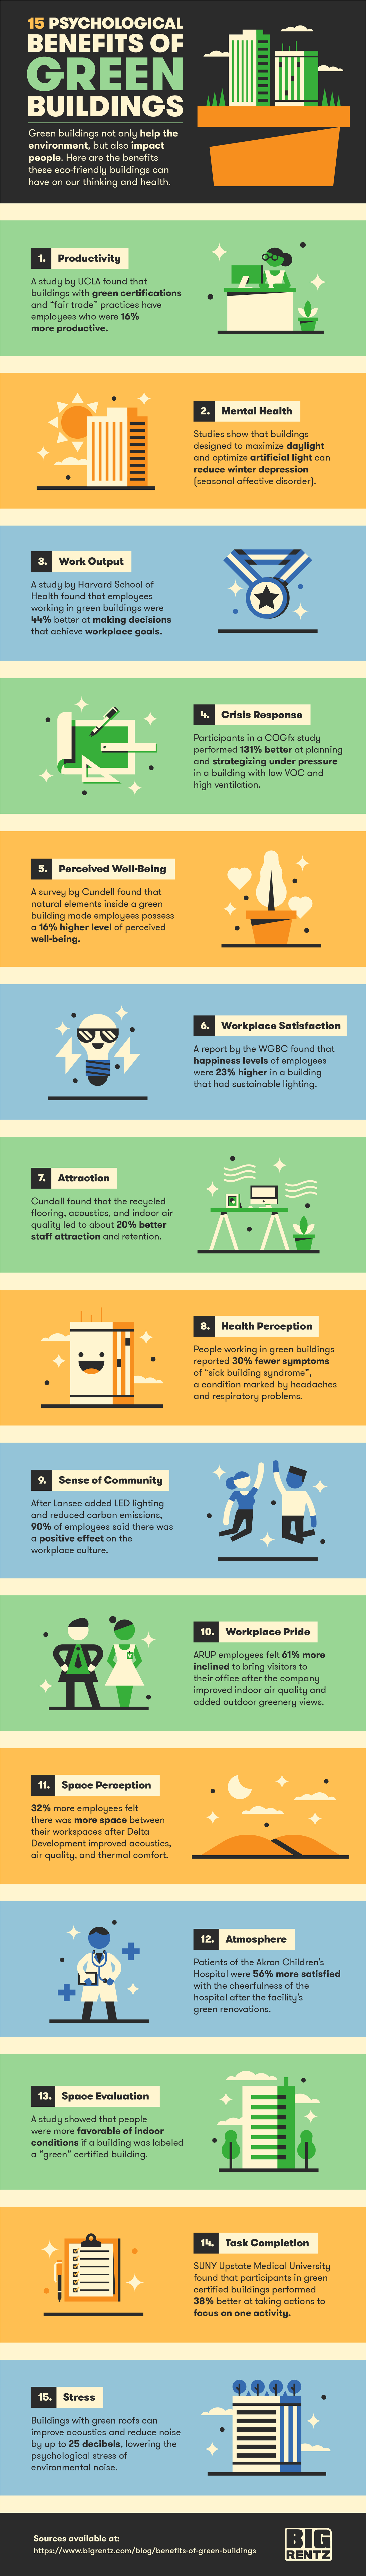 Infographic describing 15 science-backed psychological benefits of green buildings.